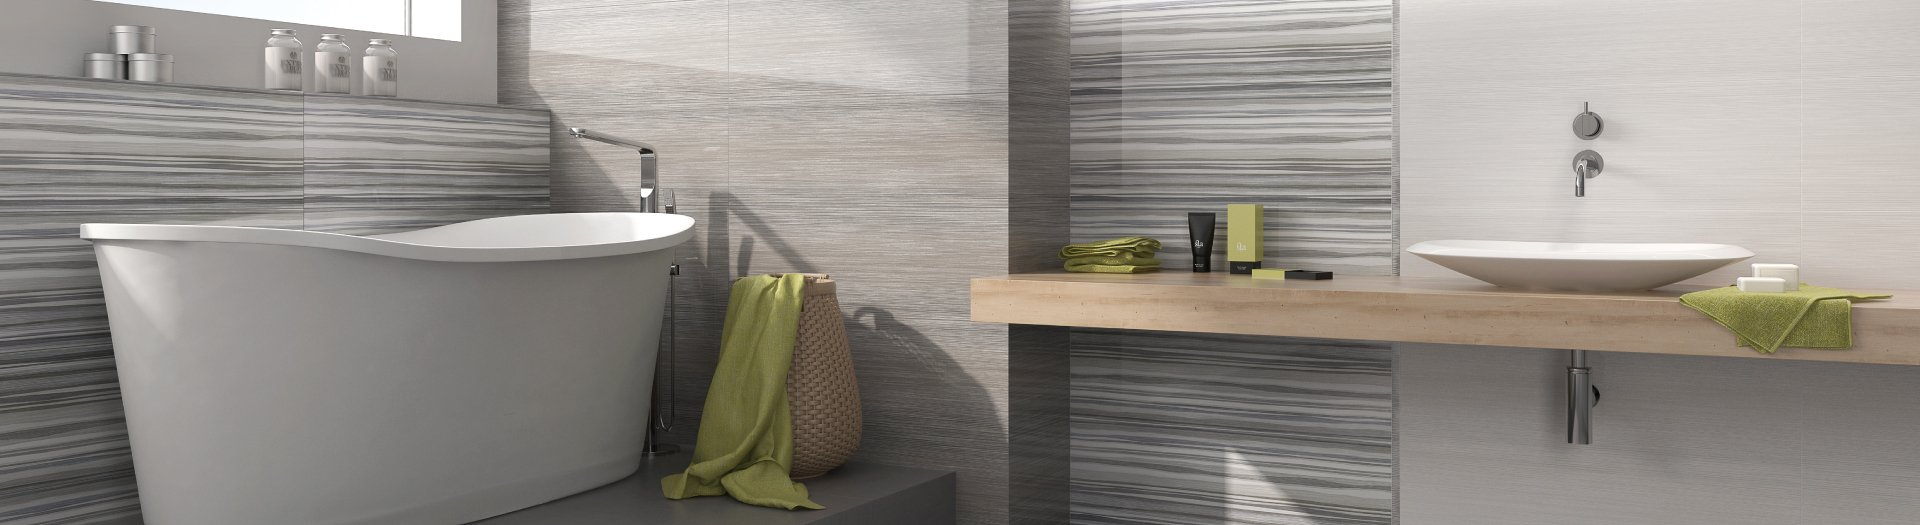 Tile san diego tile showroom tile laminate carpet in san diego browse tile flooring by brands dailygadgetfo Choice Image